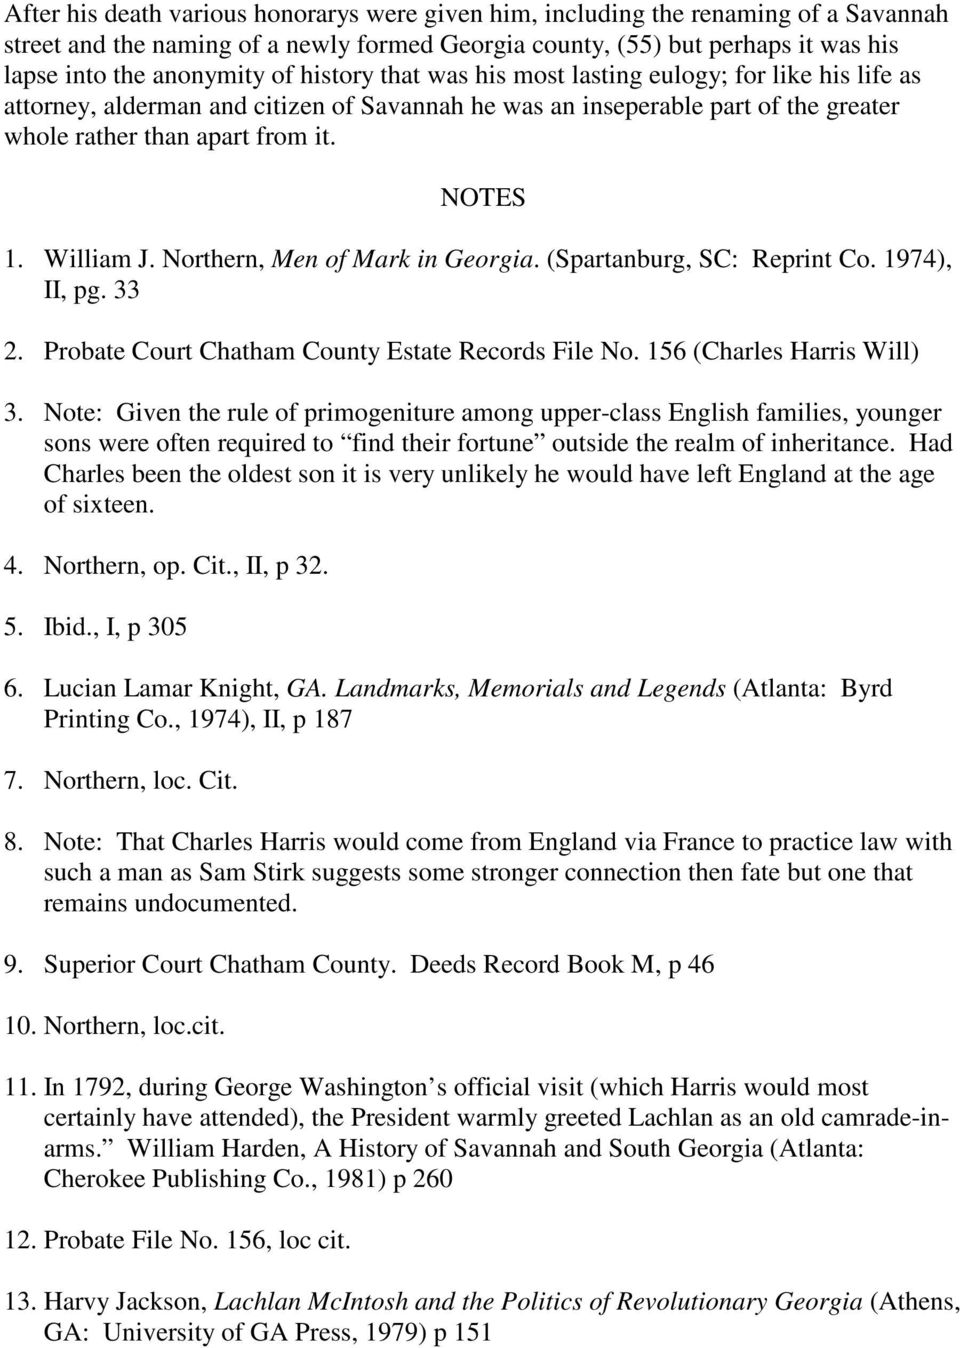 Northern, Men of Mark in Georgia. (Spartanburg, SC: Reprint Co. 1974), II, pg. 33 2. Probate Court Chatham County Estate Records File No. 156 (Charles Harris Will) 3.